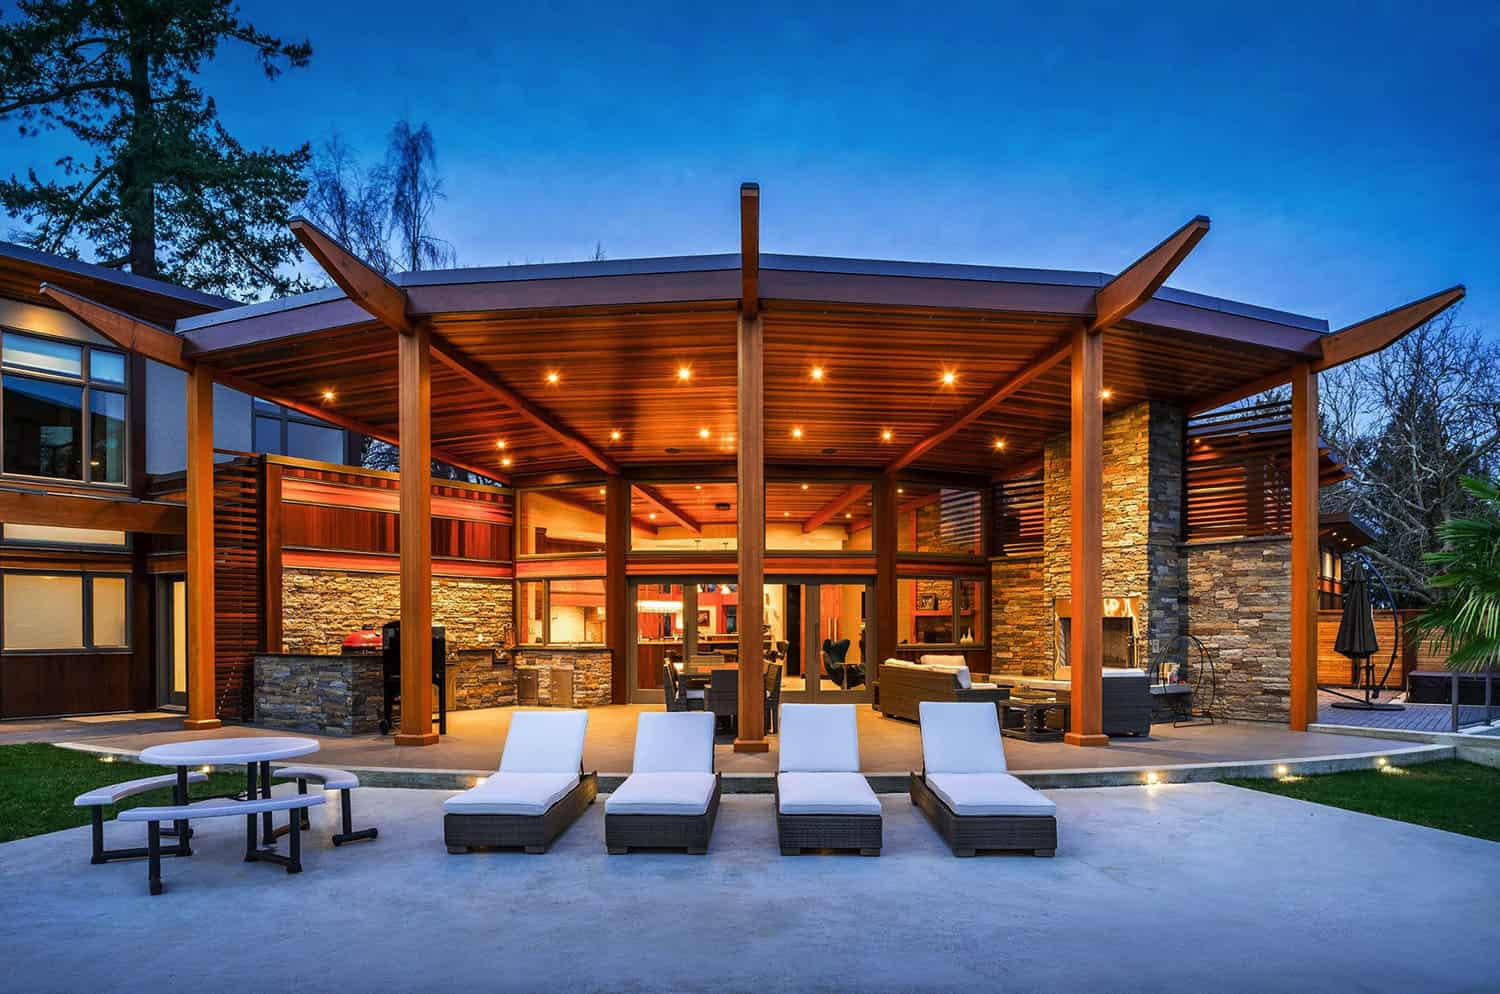 west-coast-modern-home-patio